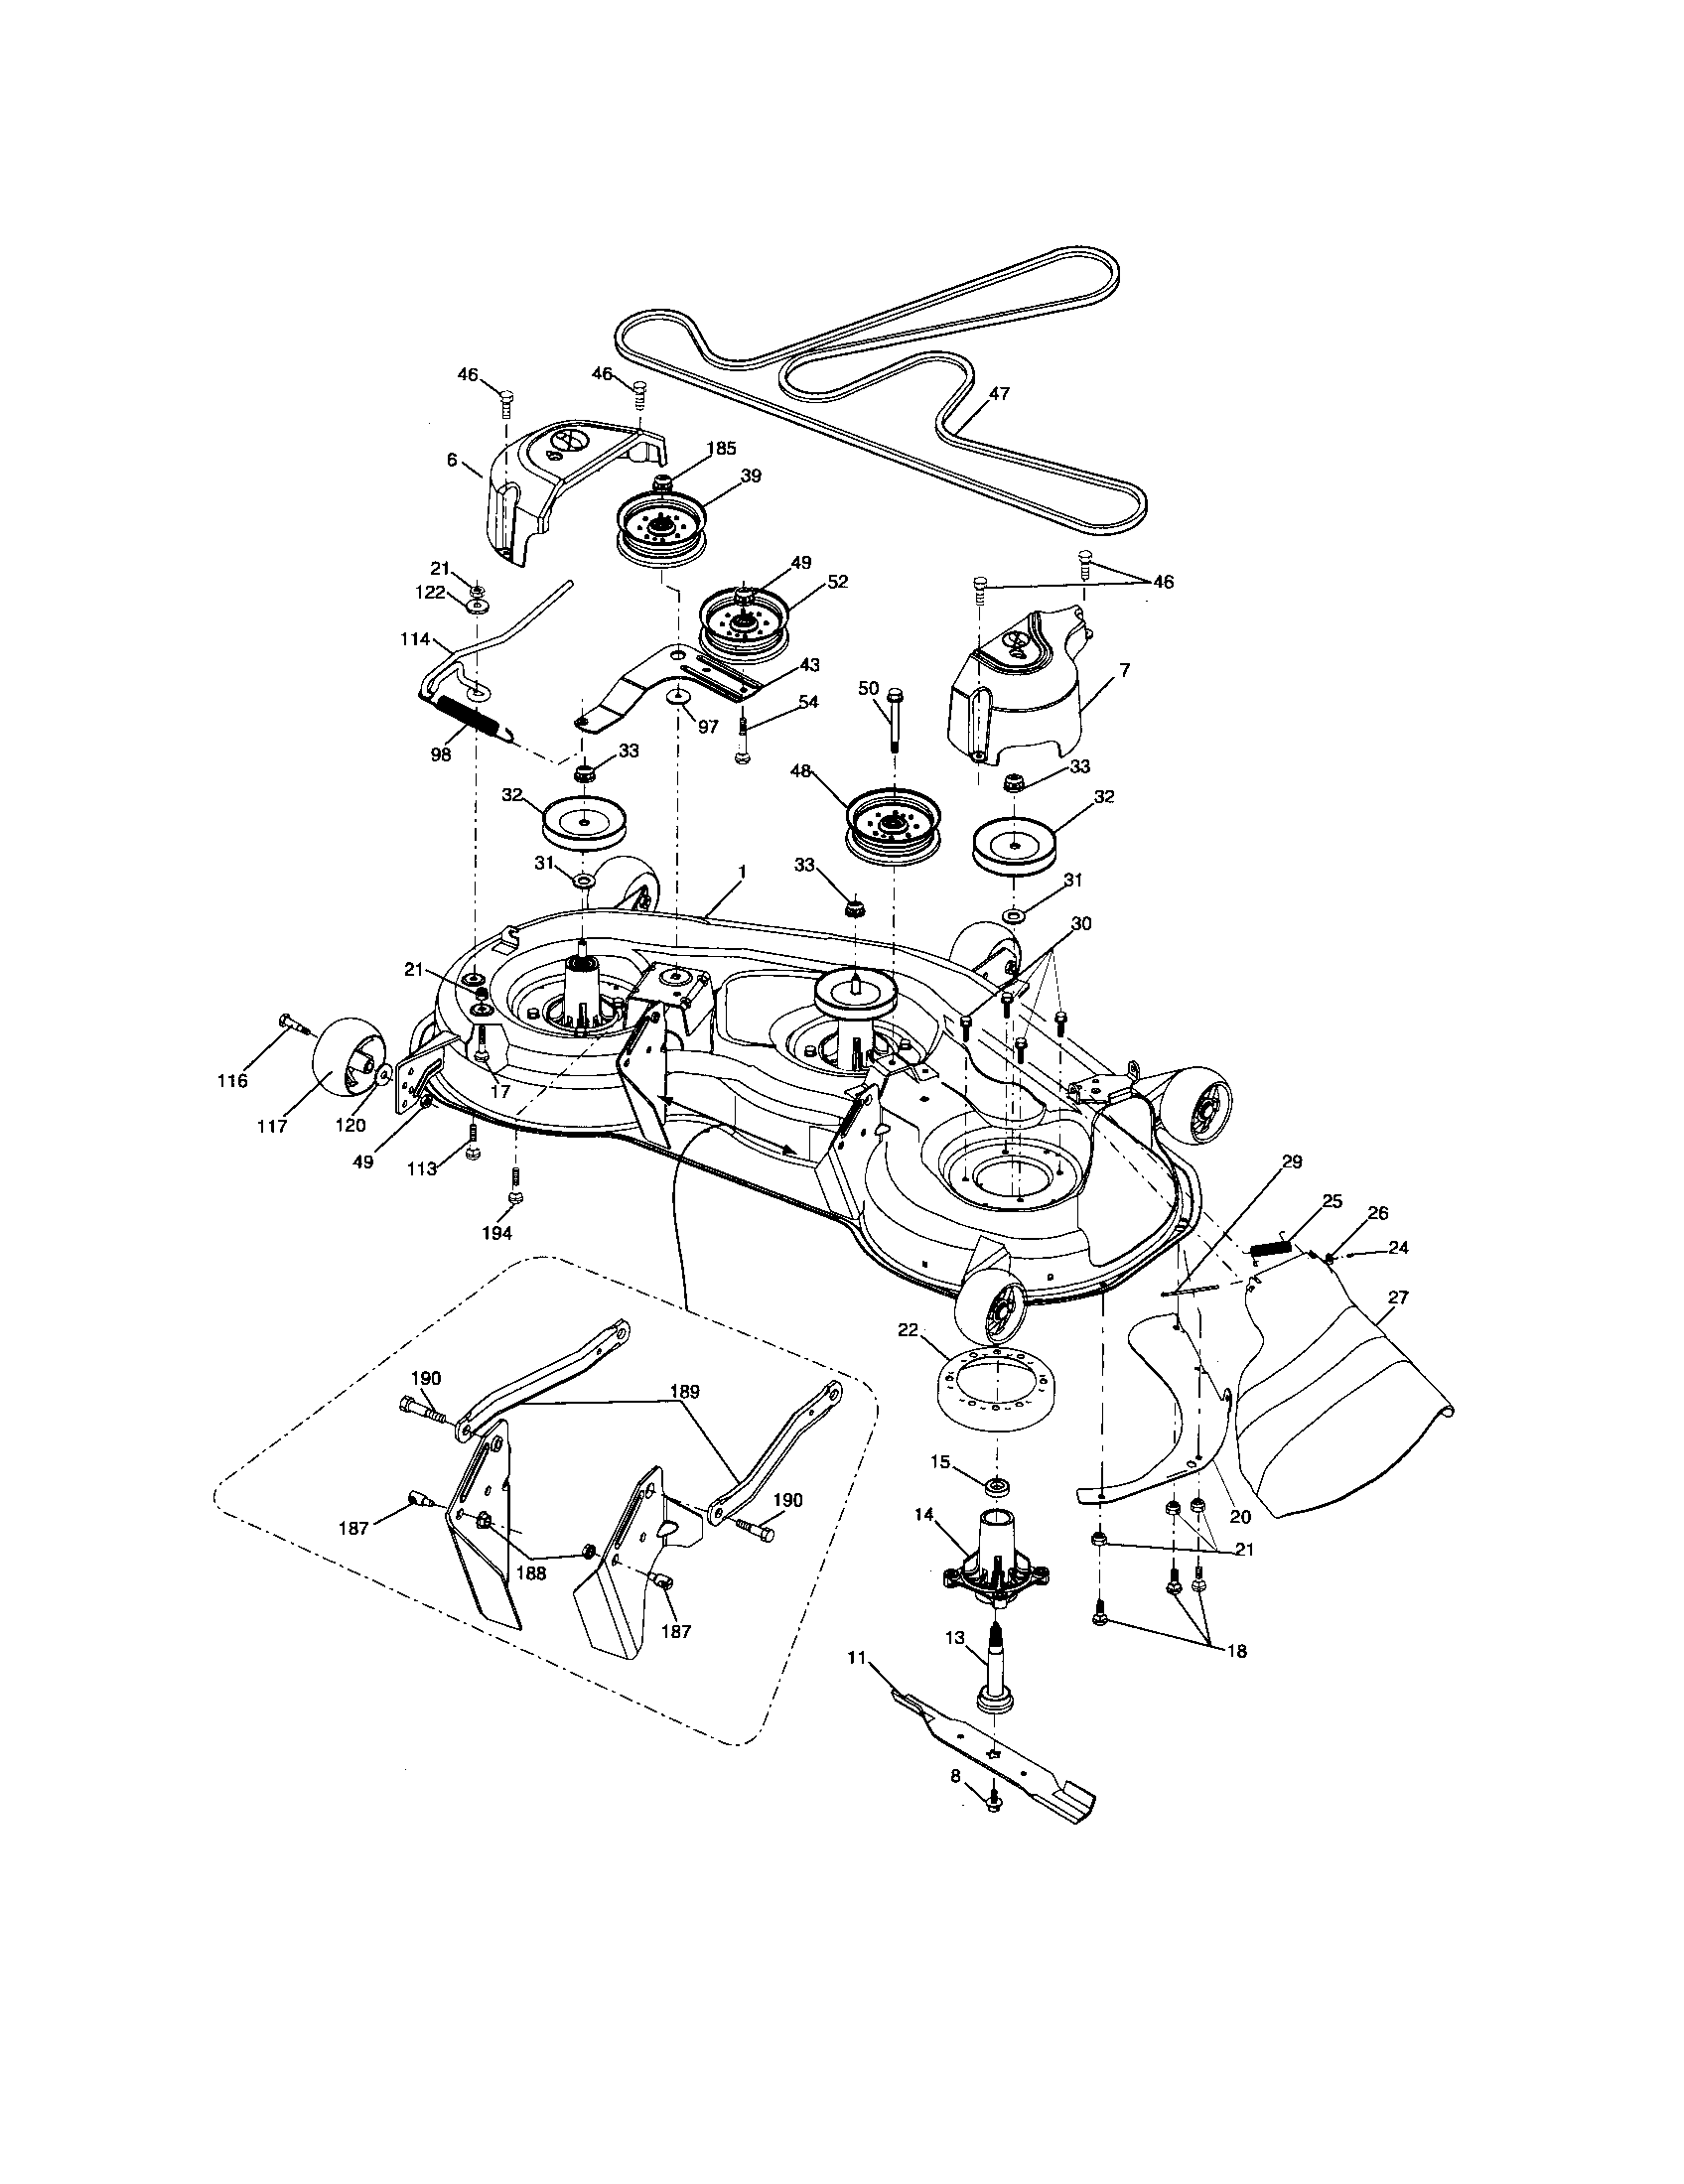 Husky Riding Mower Deck Diagram 48 In, Husky, Free Engine